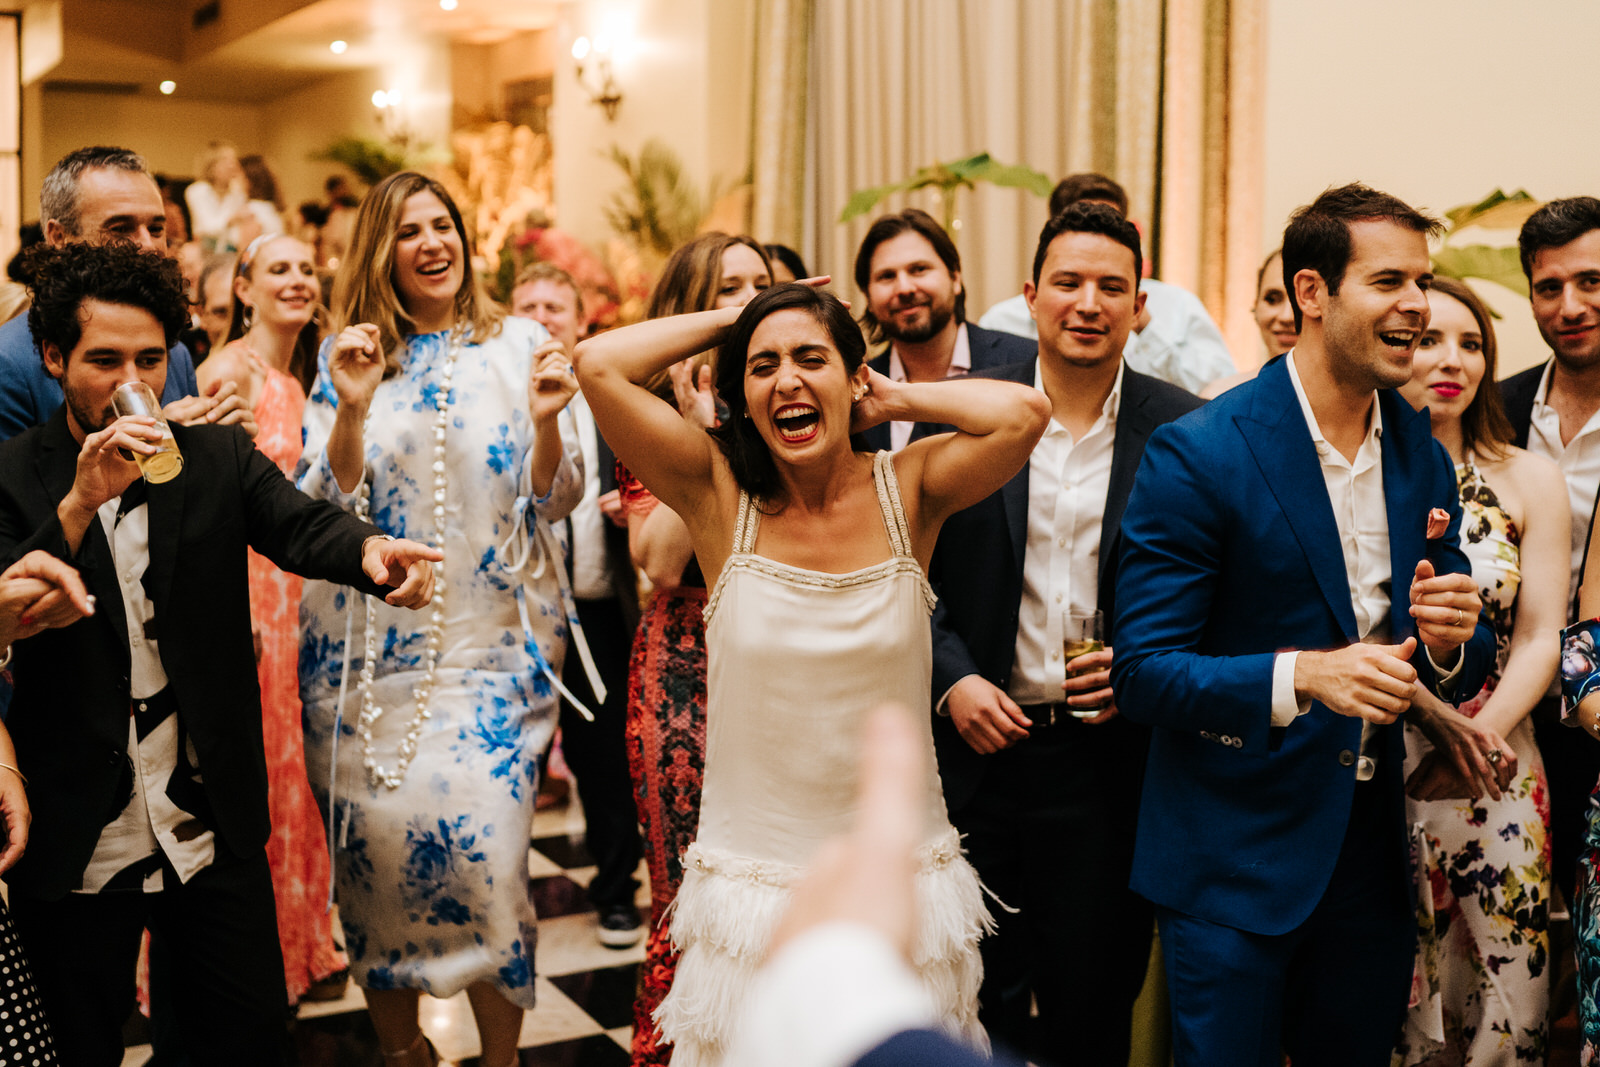 Bride is laughing in hysterics on the dancefloor